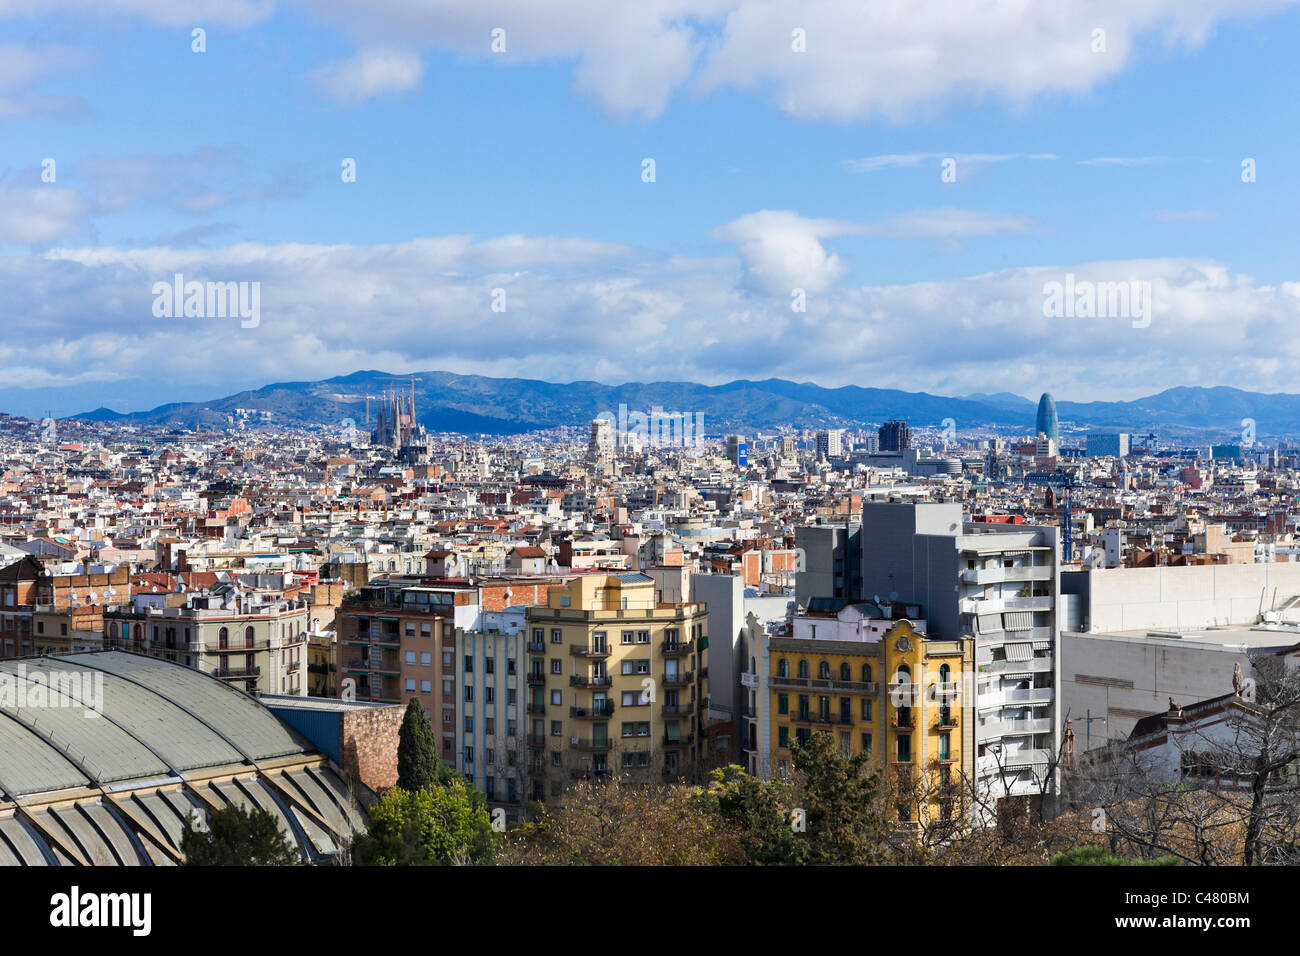 View over the city from the Palau Nacional, Montjuic, Barcelona, Catalunya, Spain - Stock Image